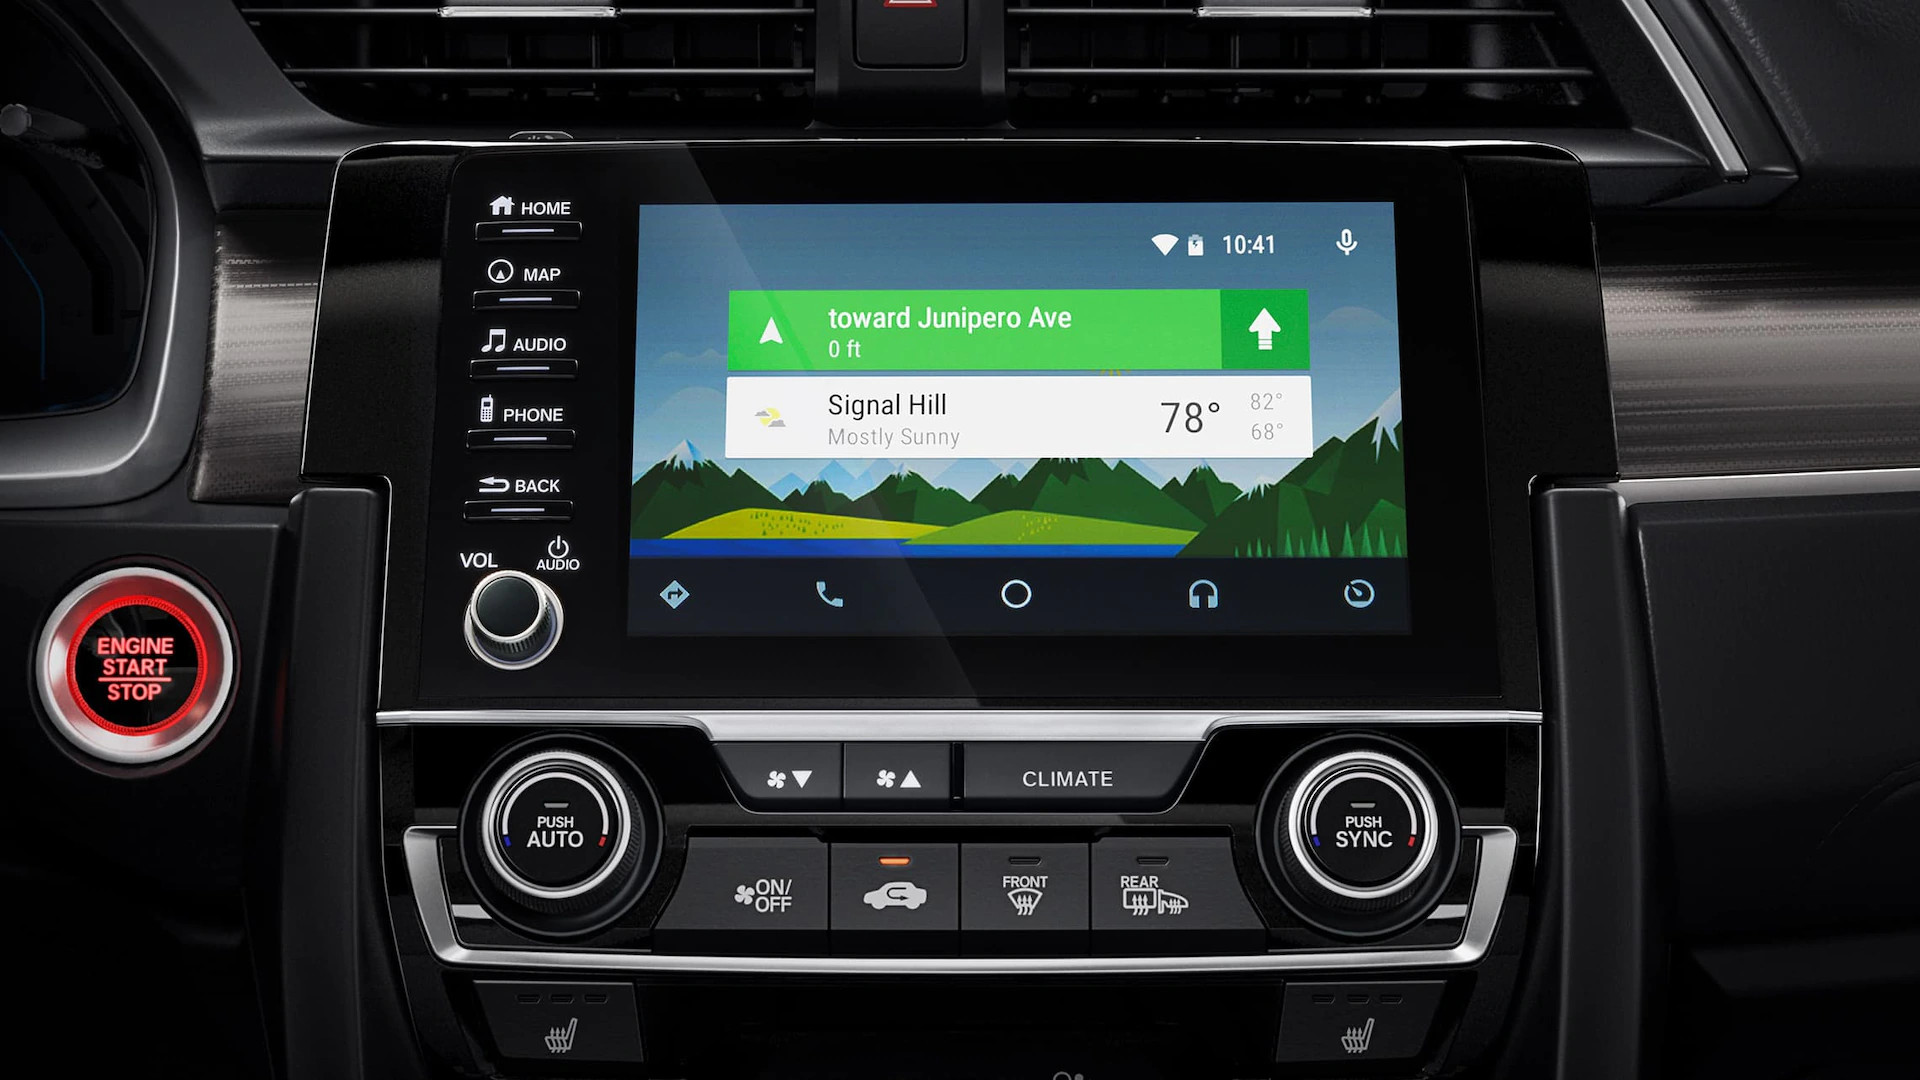 2020 Civic With Android Auto™